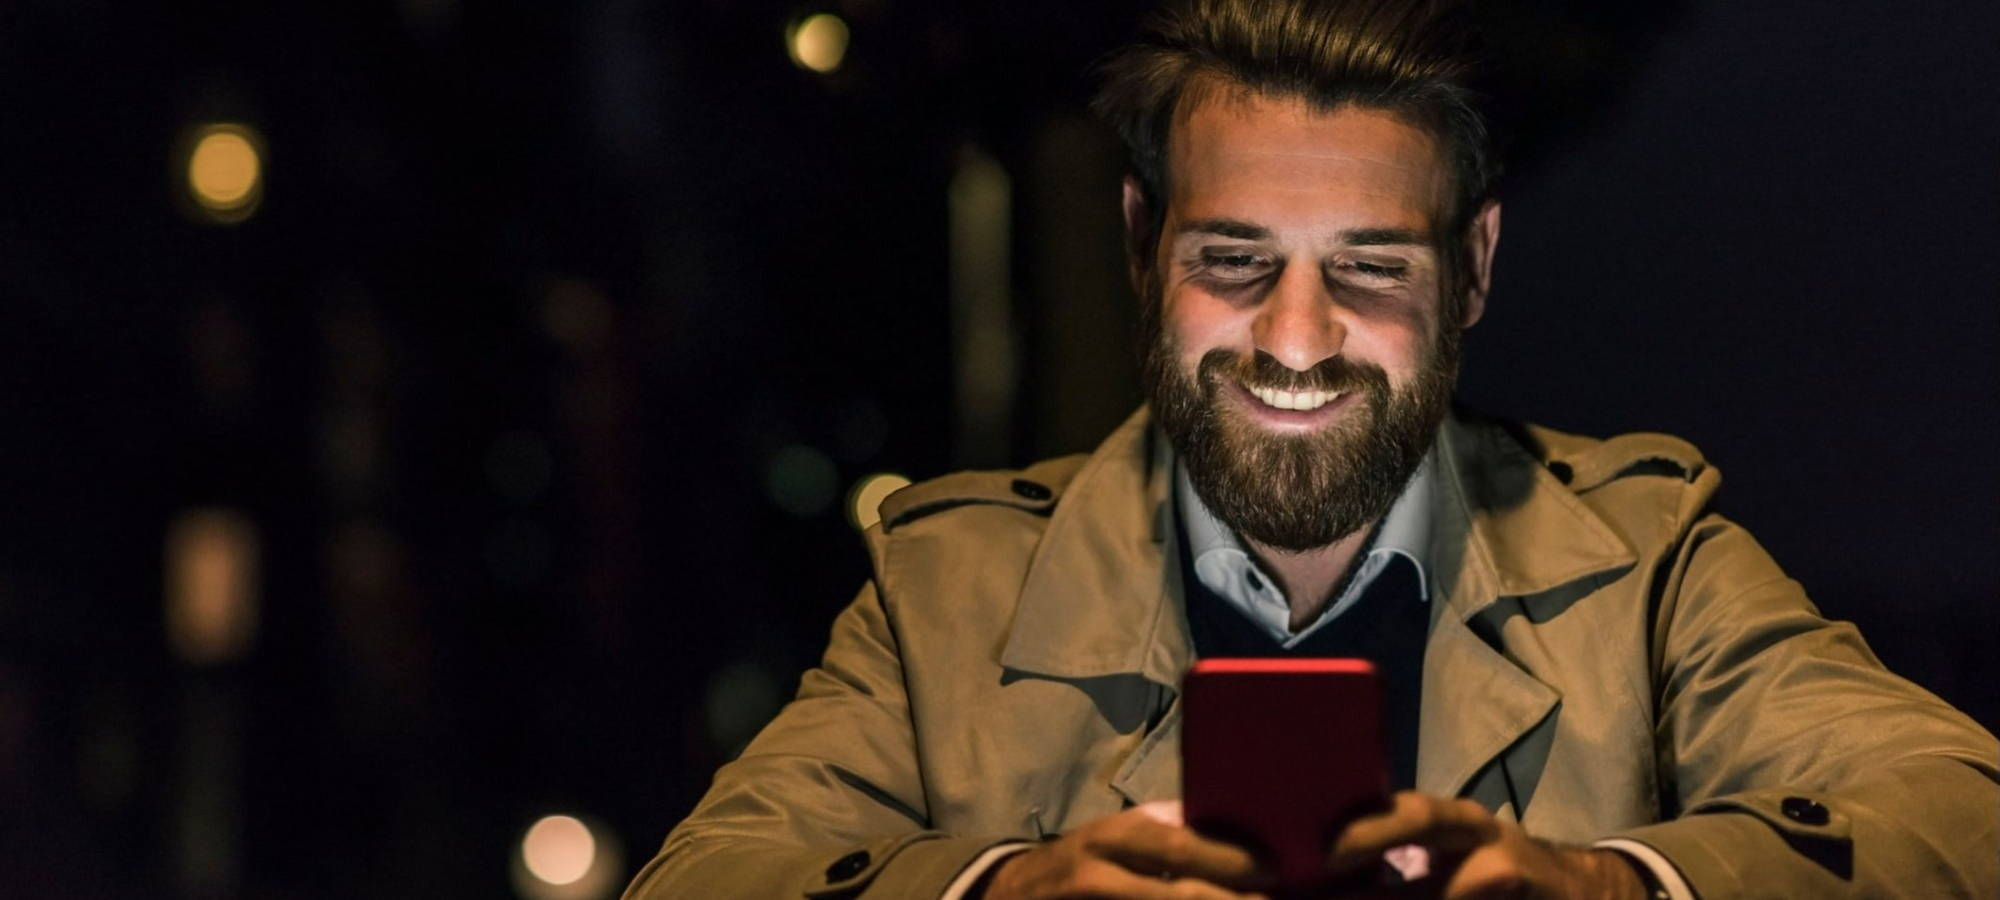 Kelly services Boy smiling at phone